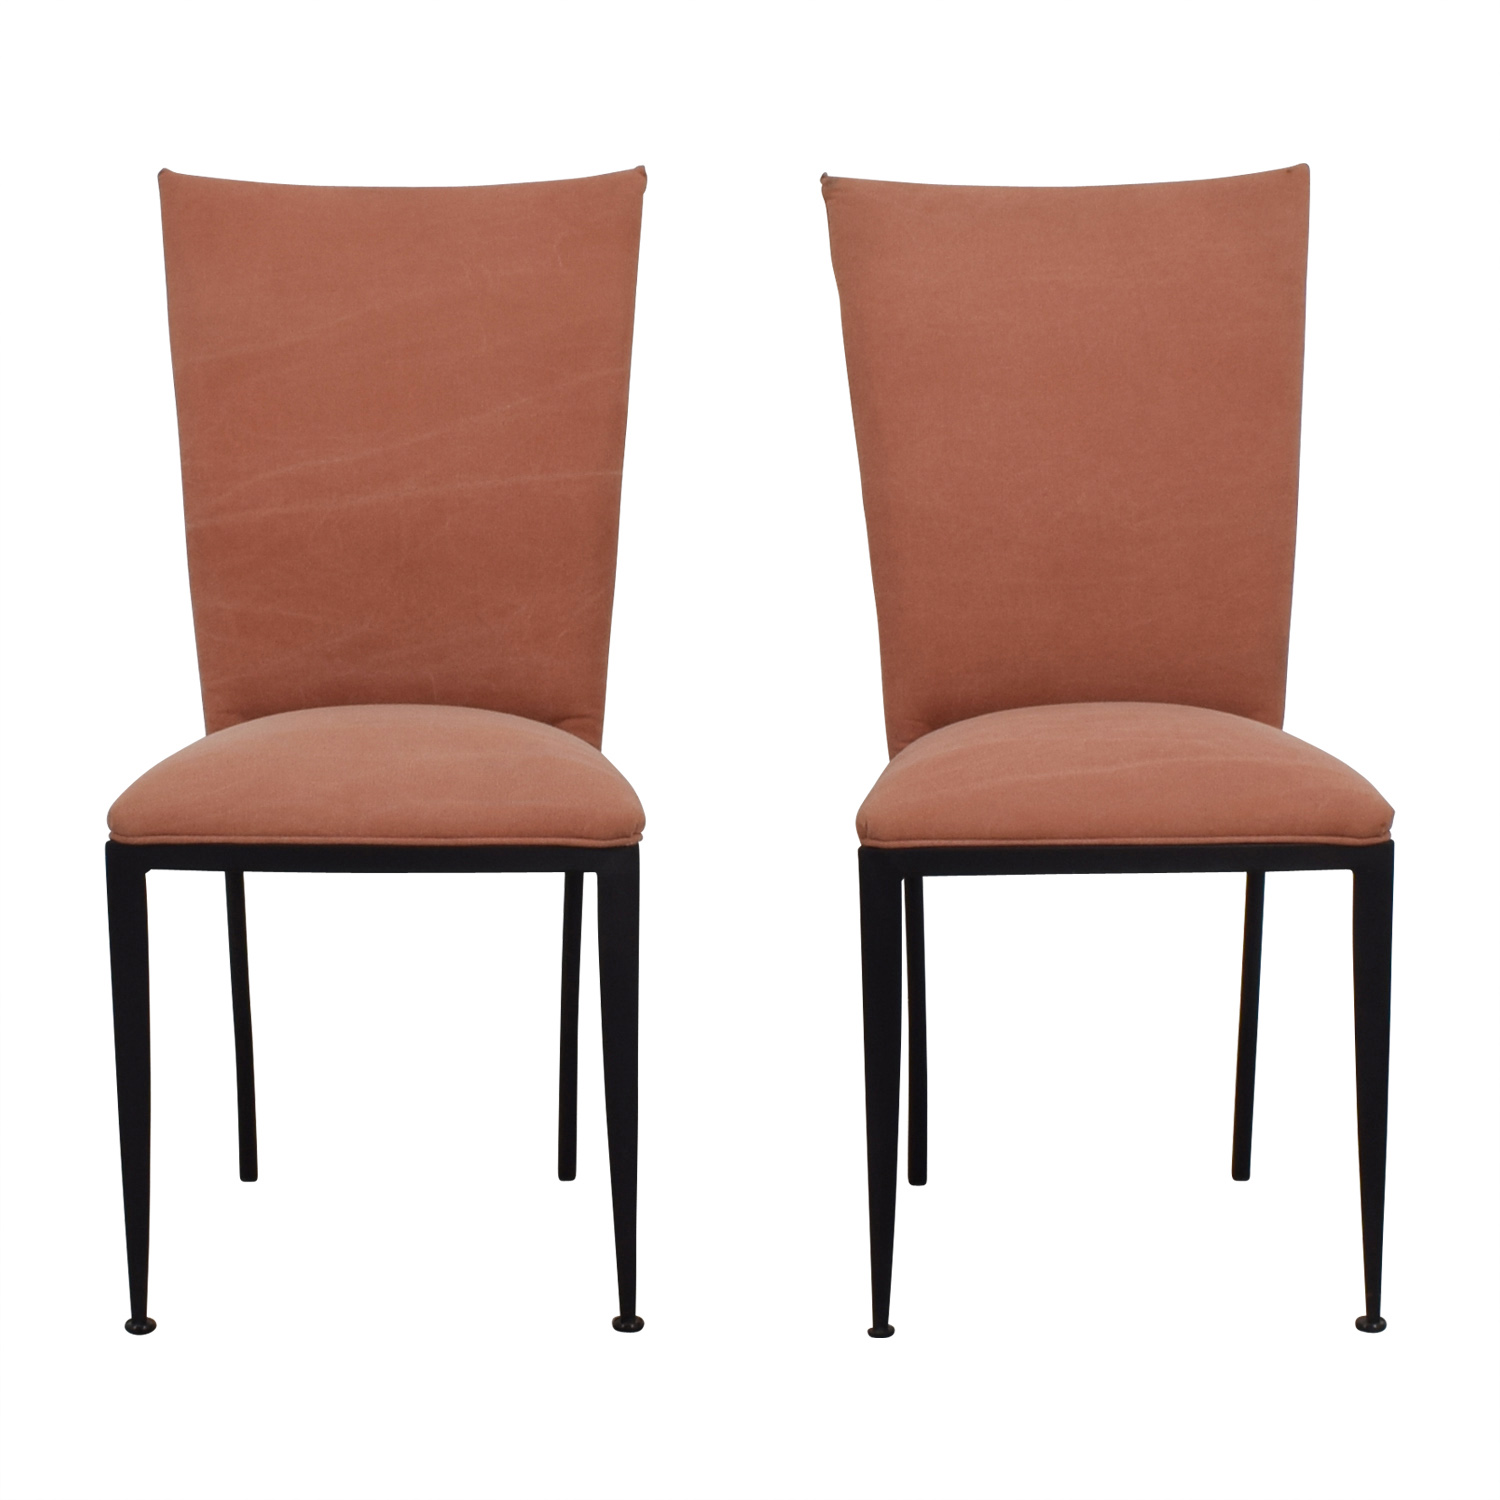 dining chairs at marshalls dental for sale 77 off marshall fields pink upholstered price